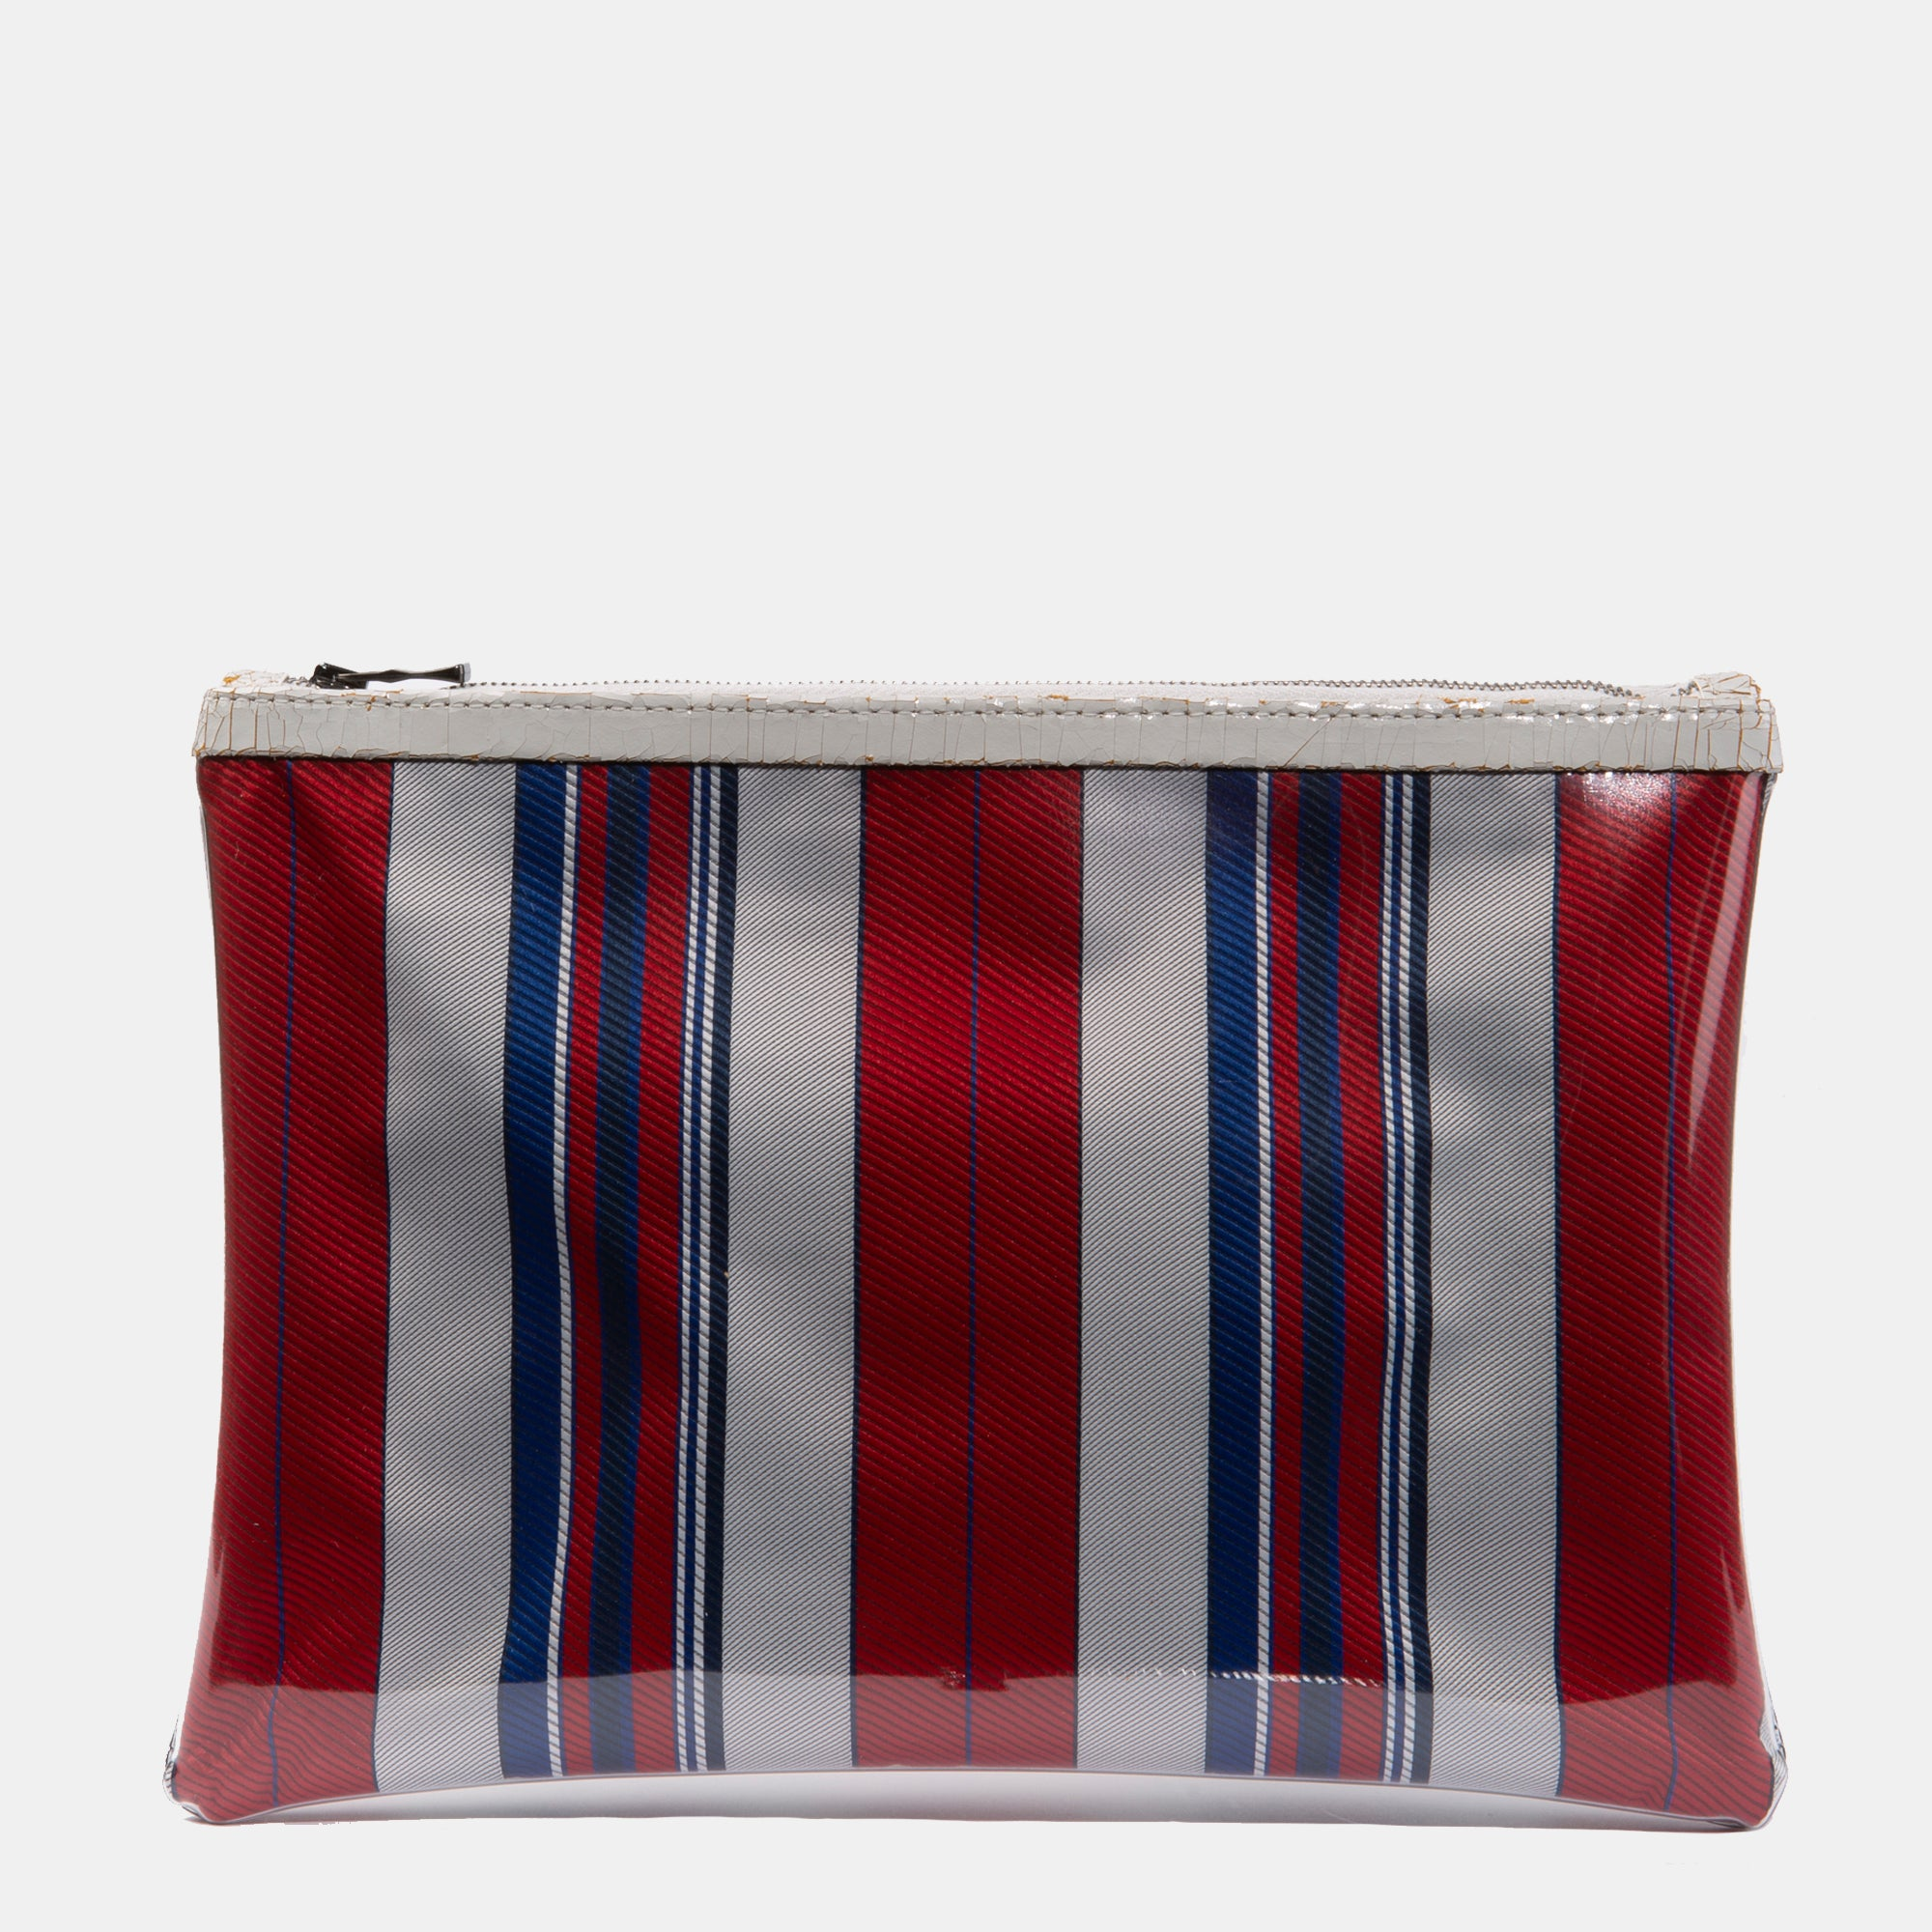 Luxury leather sustainable silk rectangular pouch encased in ecofriendly polyurethane.